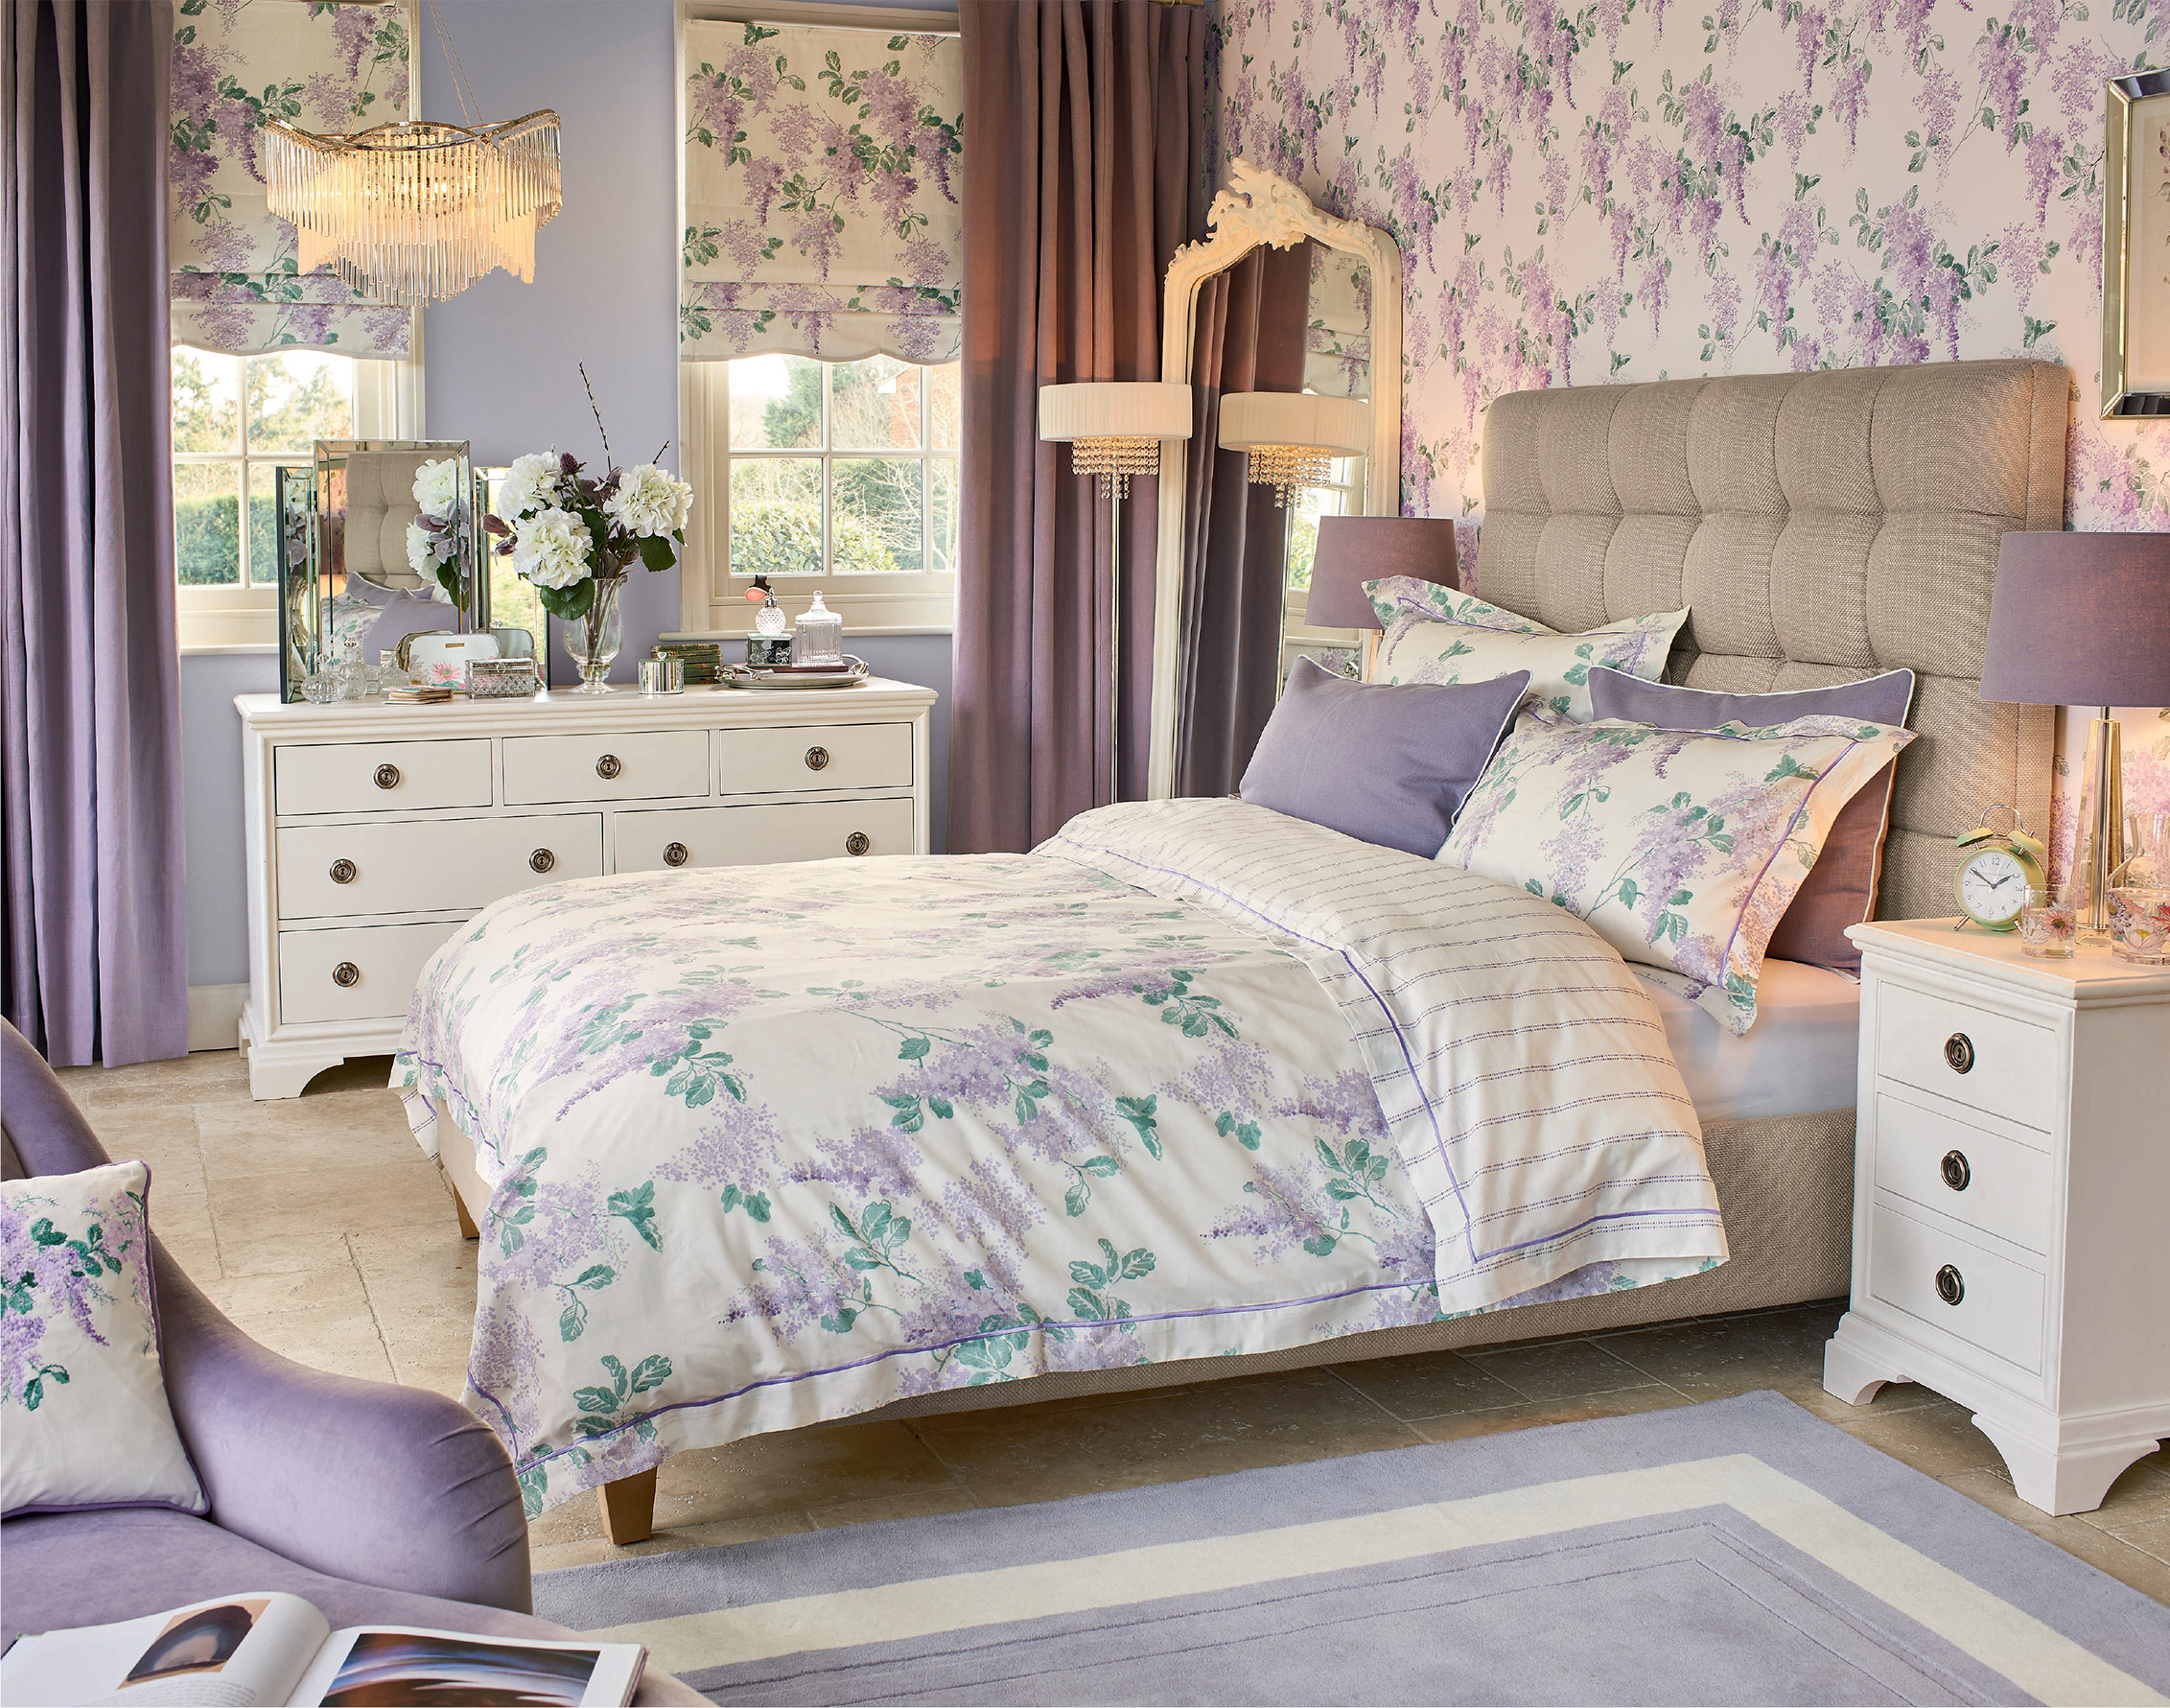 Bedroom Ideas To Fall In Love With